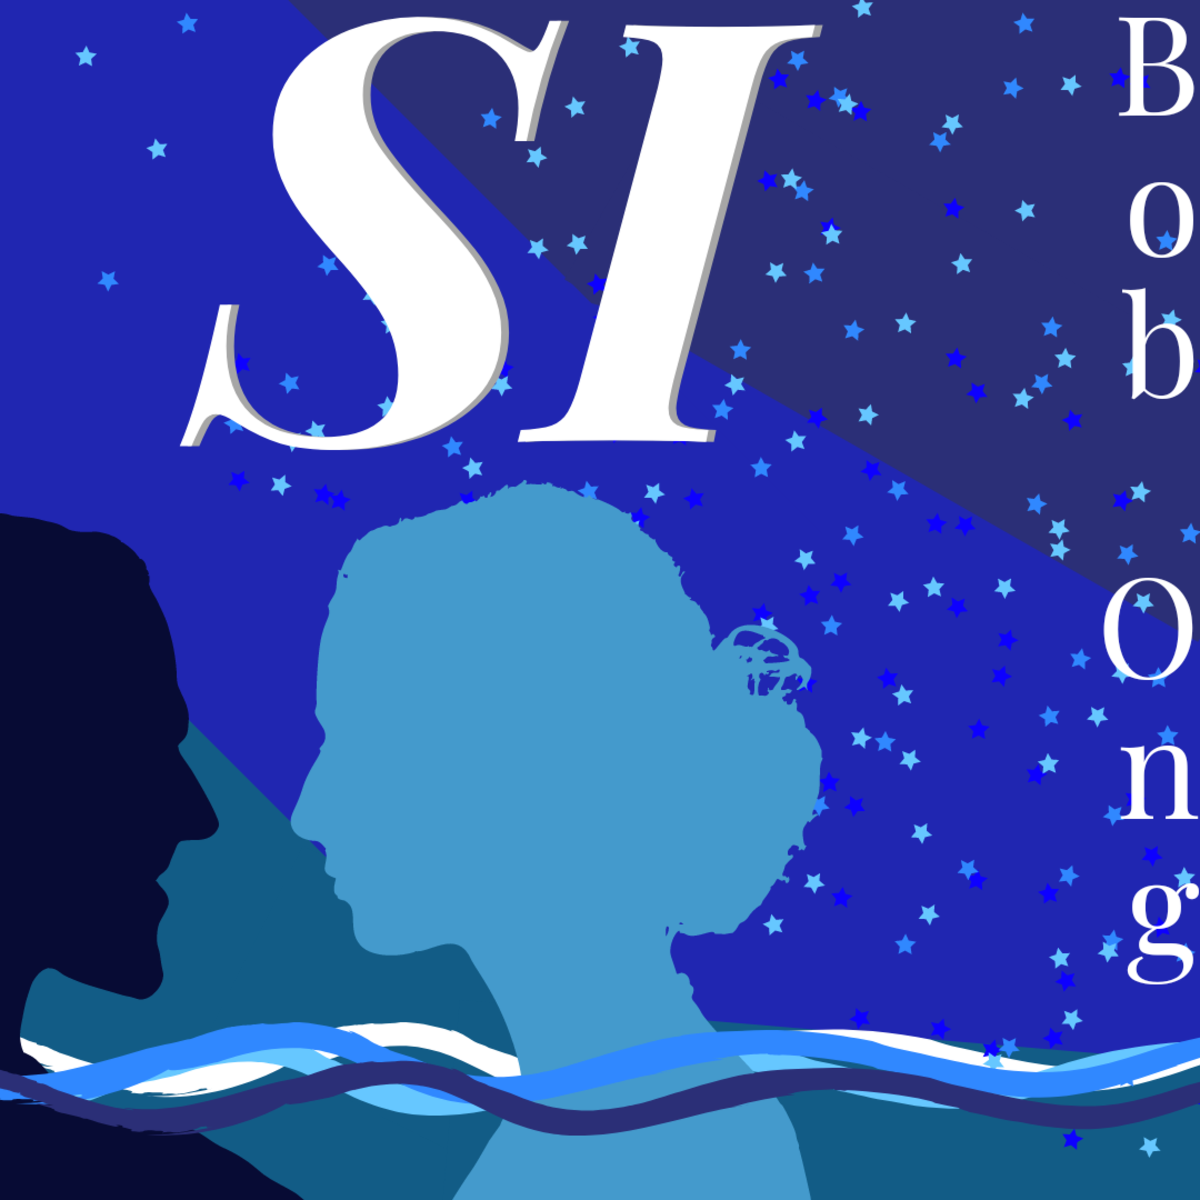 """Book cover design I made for Bob Ong's """"Si."""""""